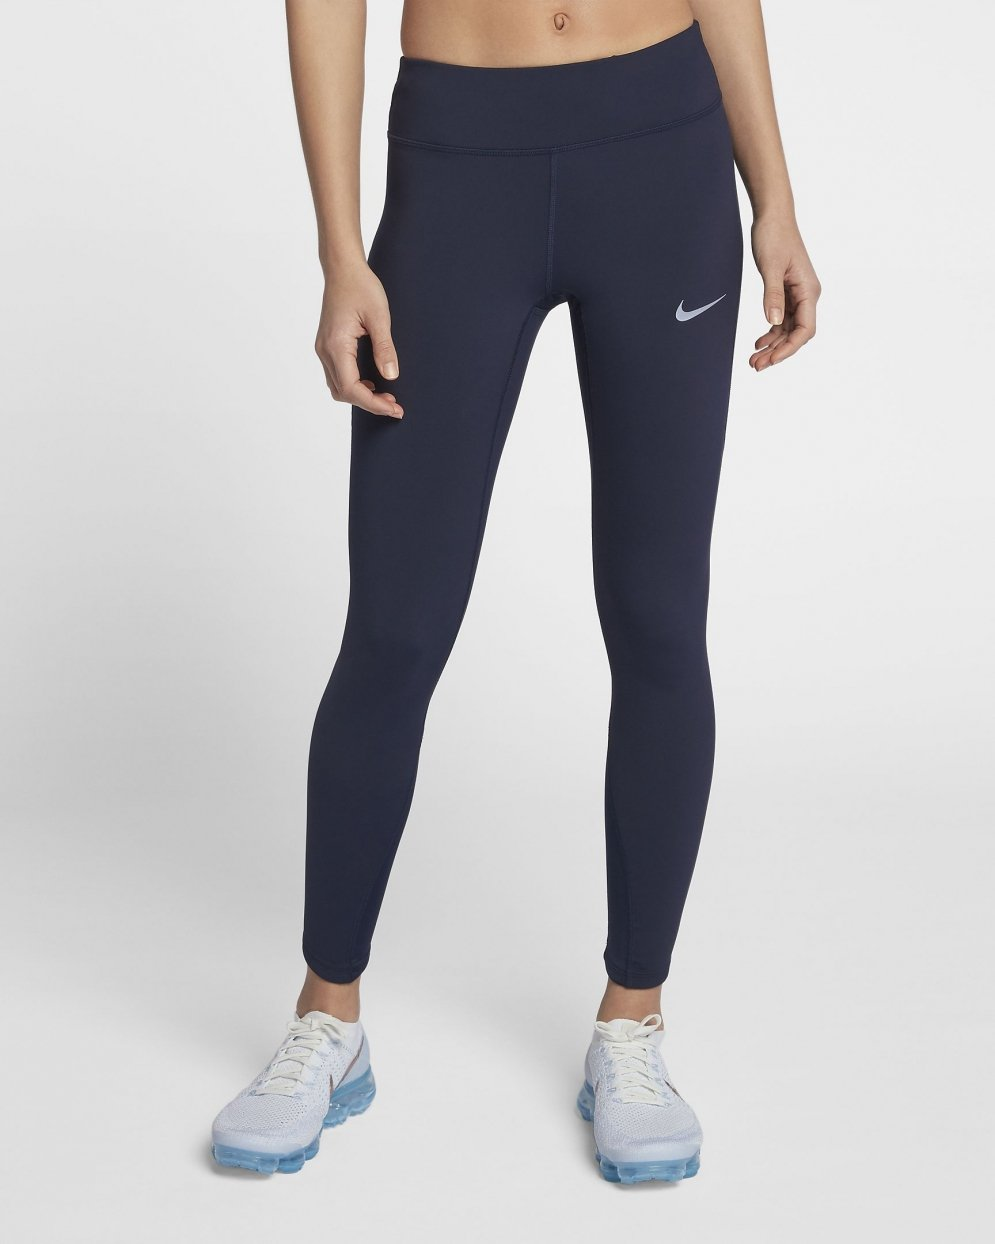 Nike Power Epic Lux Tights dame online   Fri levering